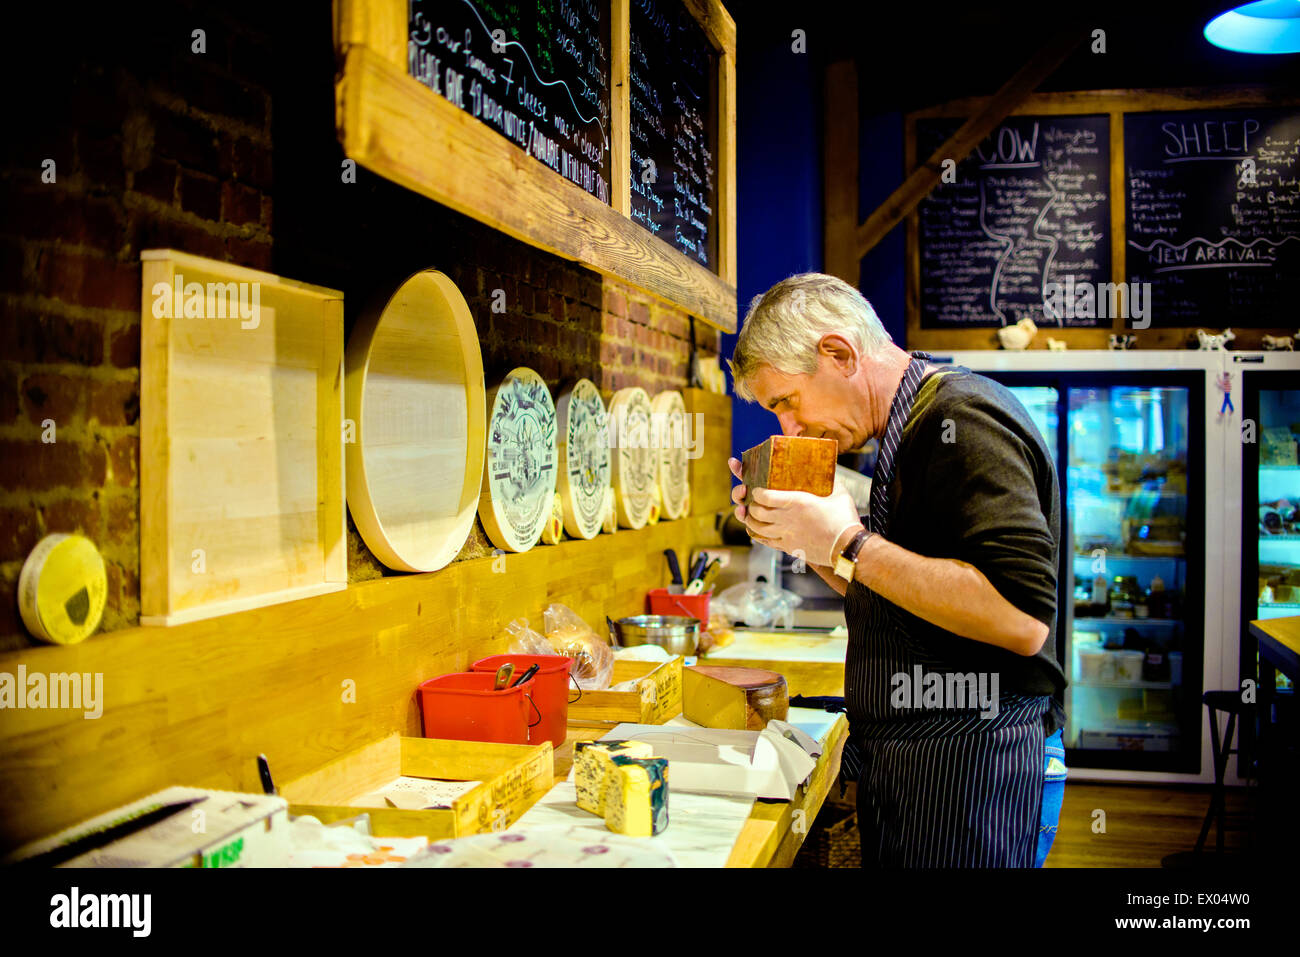 Cheesemonger smelling cheese - Stock Image